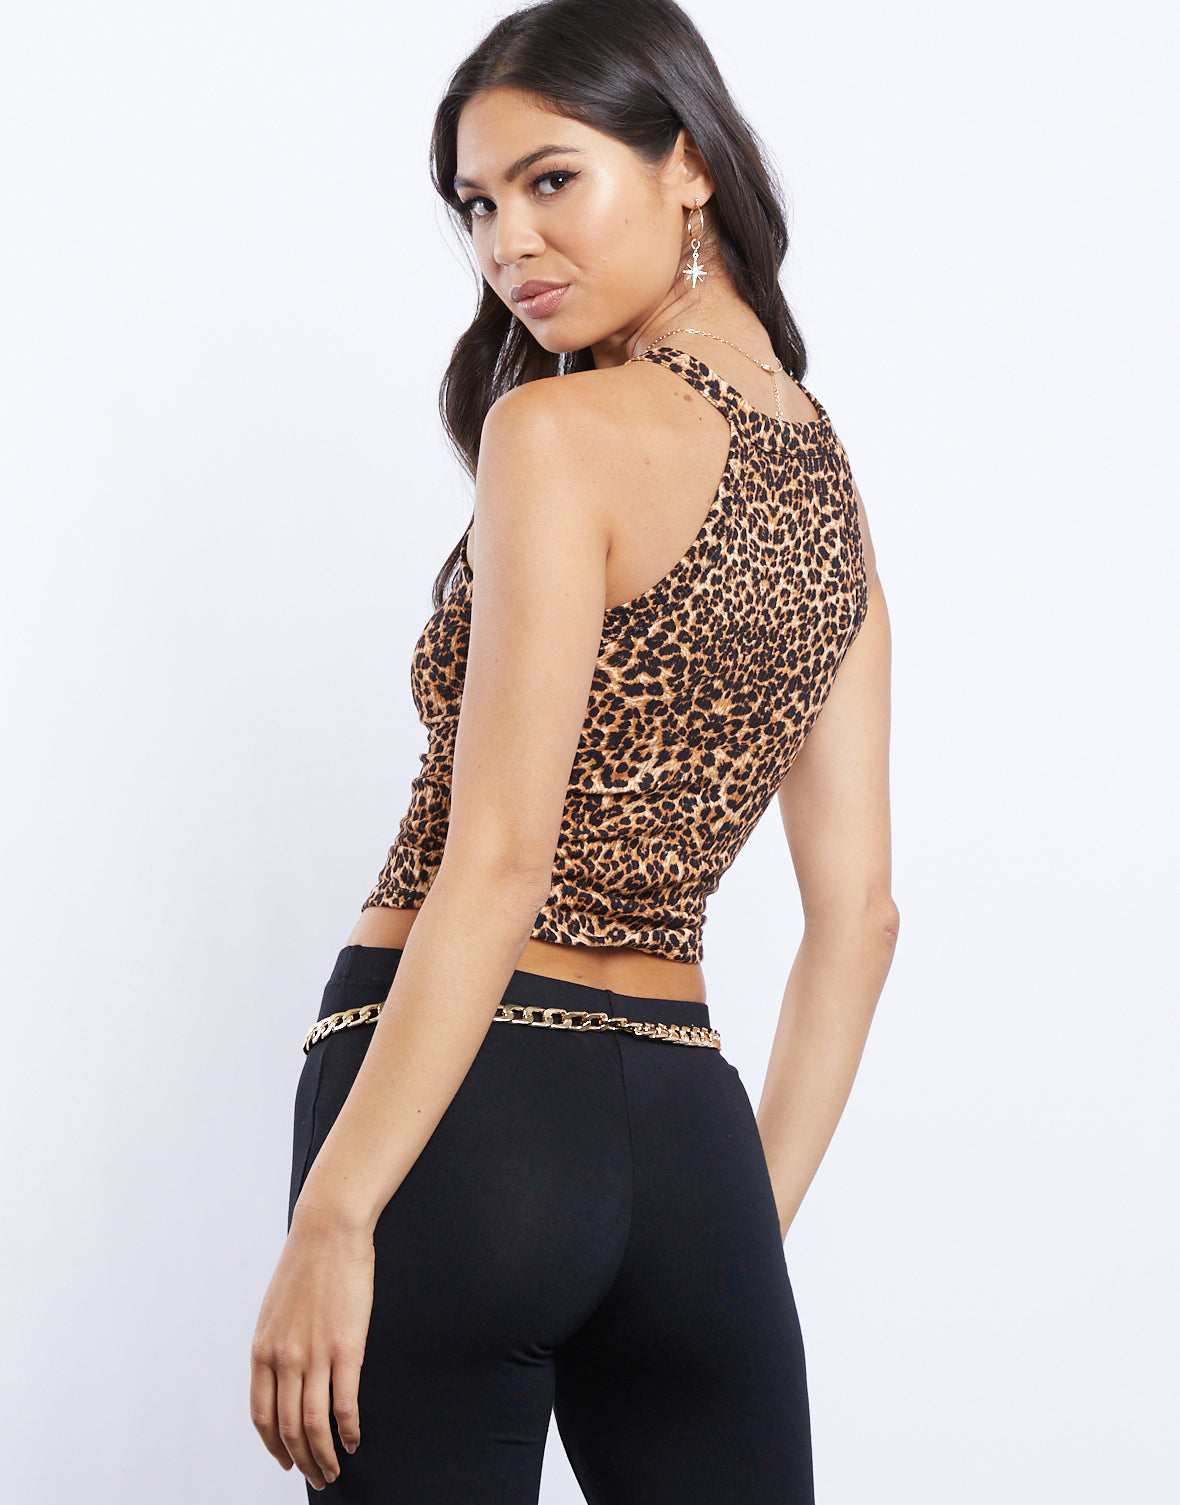 Something Wild Leopard Tank Top